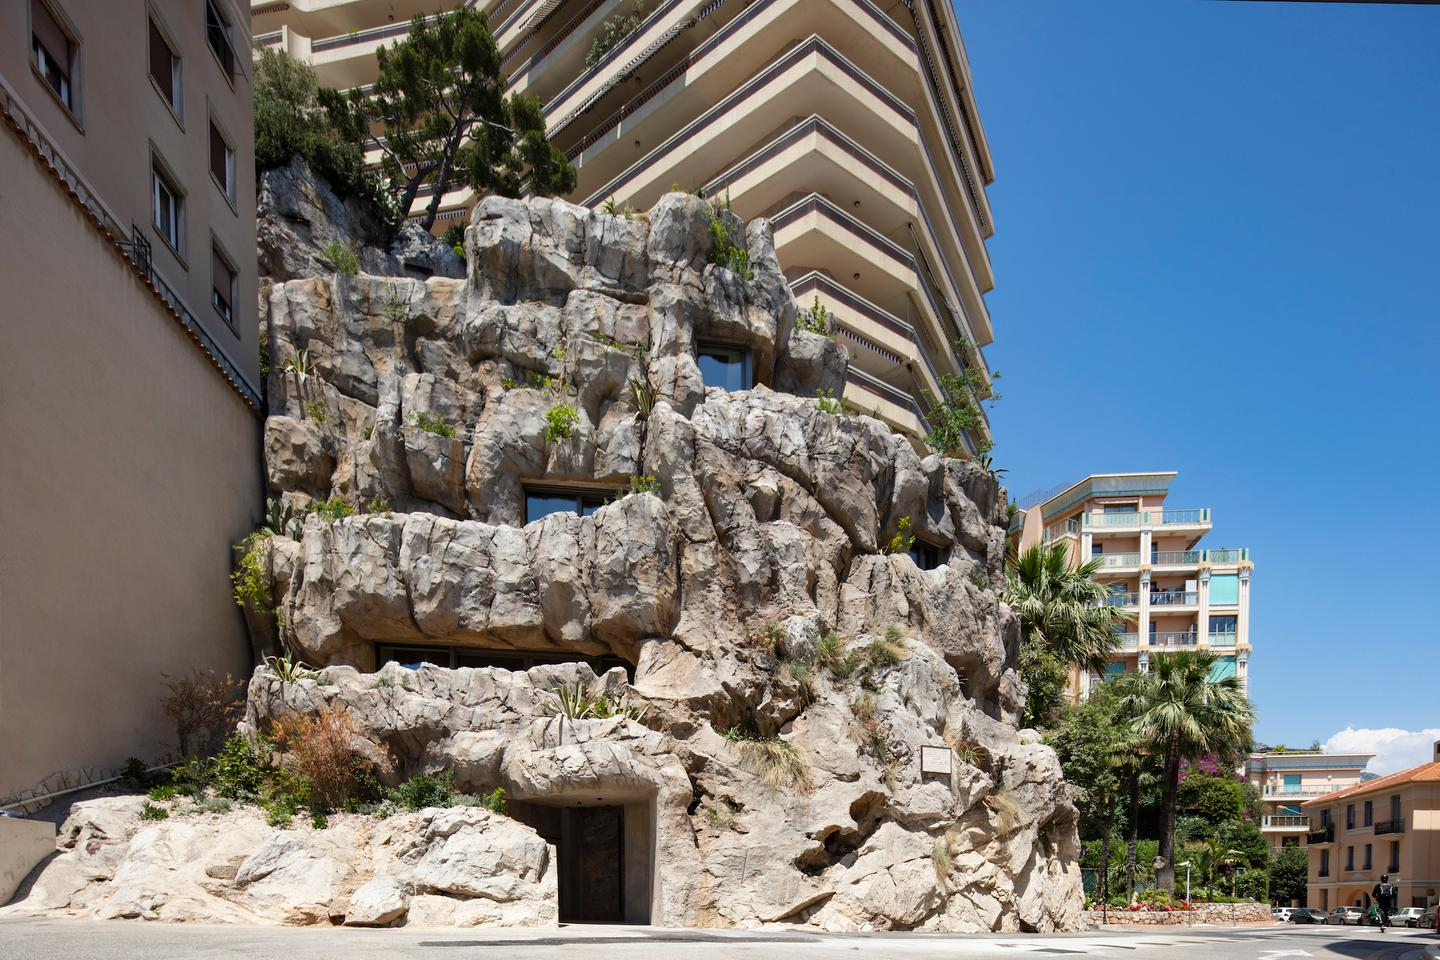 Villa Troglodyte is a luxury home built into a cliff face